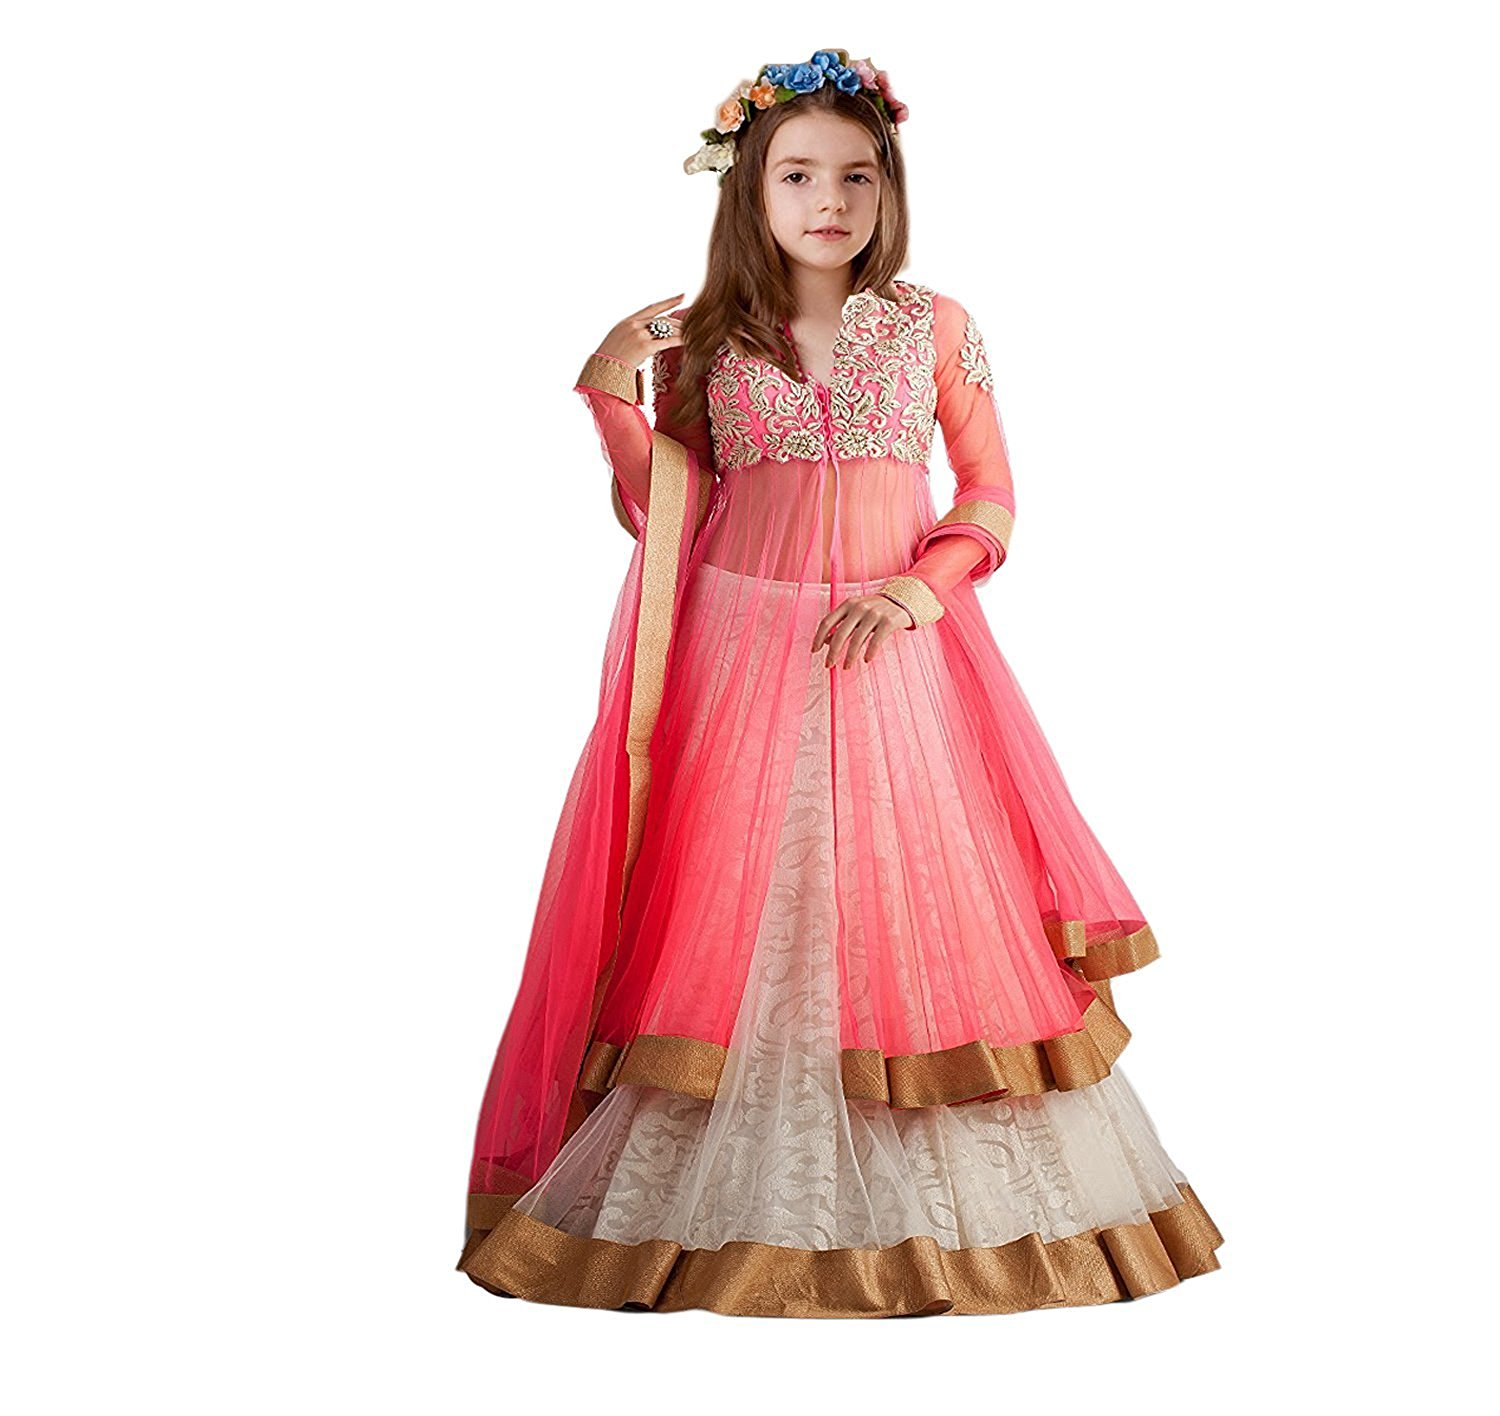 S R Fashion Girl S Rasal Net Lehenga Choli With Dupatta Multi Color 8 11 Years Ppk Cartnext In